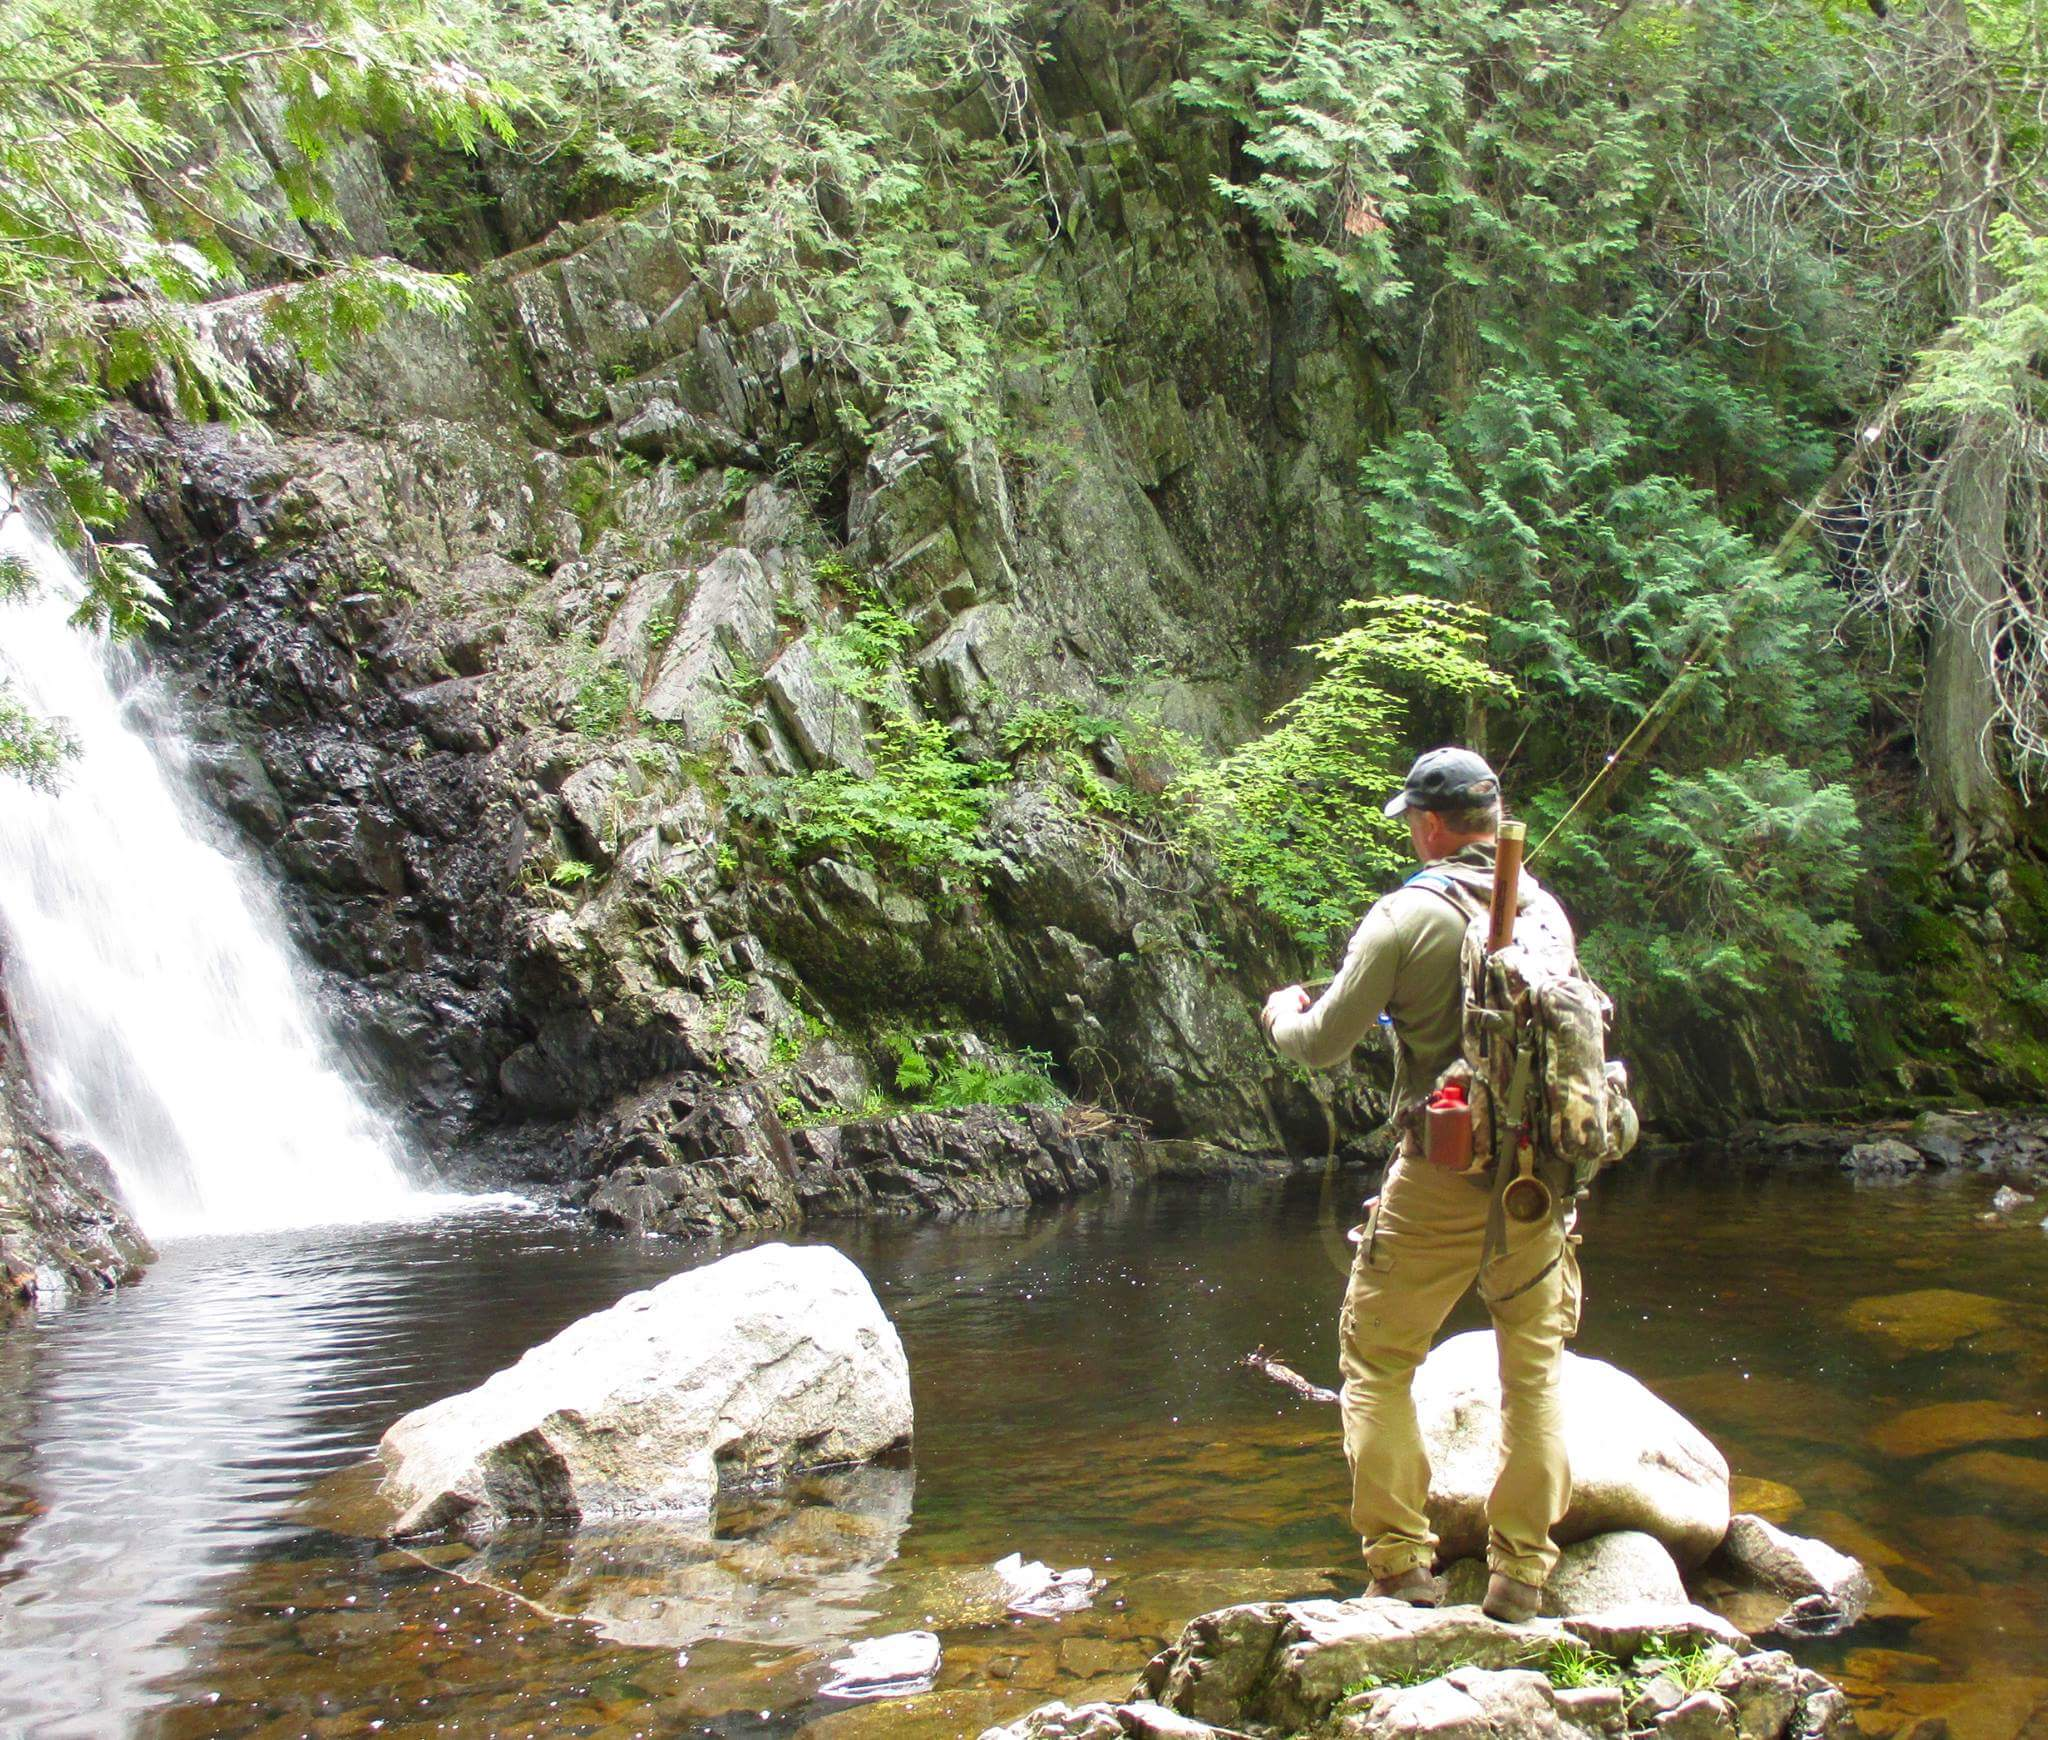 Fly fishing guided fishing trips at maine huts trails for Fishing in flagstaff